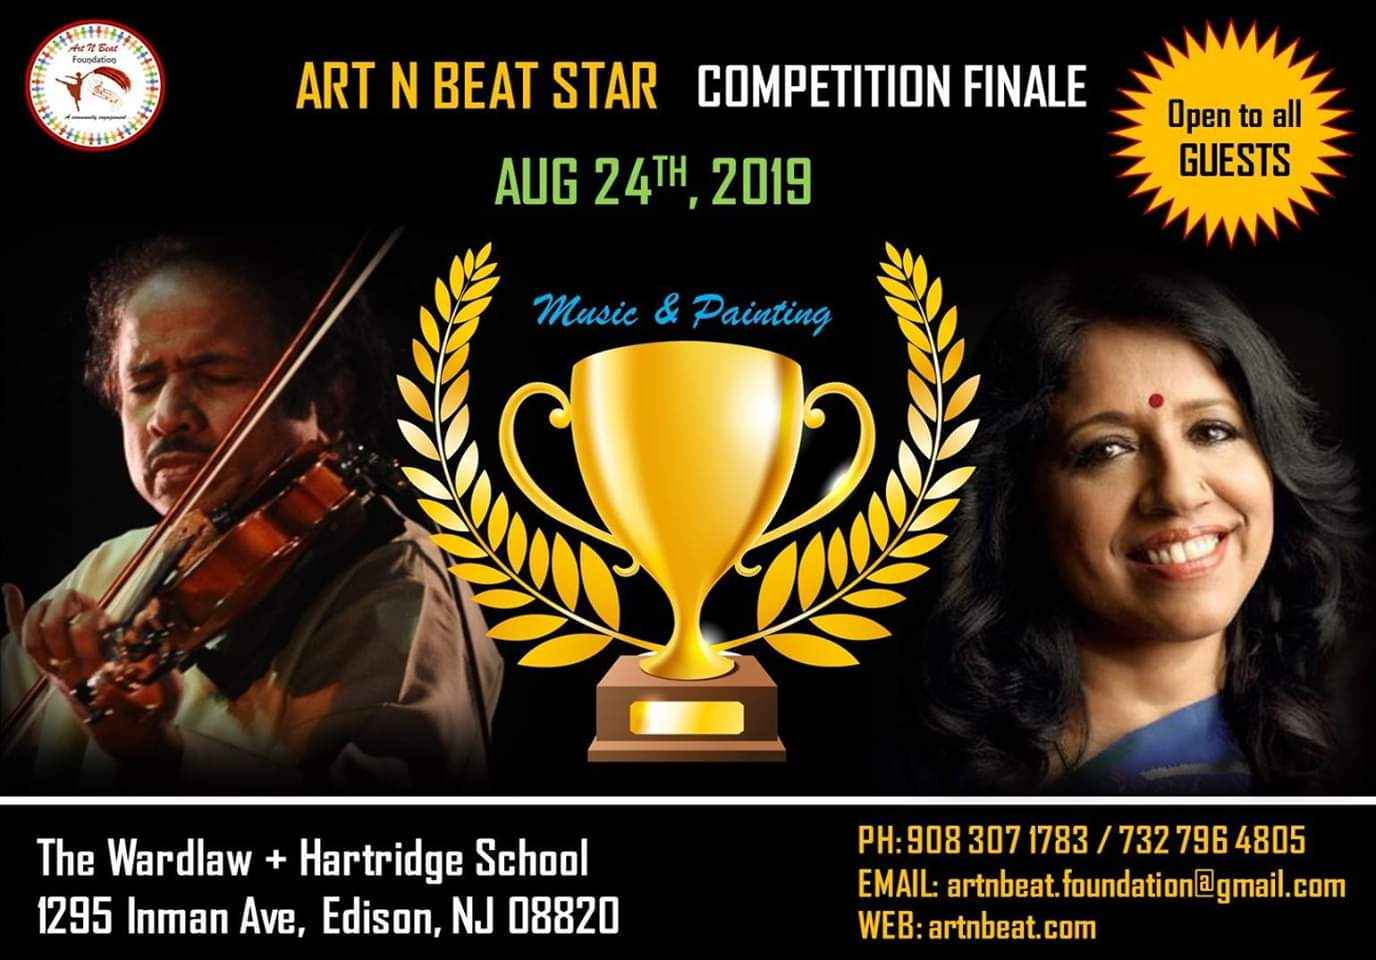 ART N BEAT STAR COMPETITION FINALE - Music & Painting